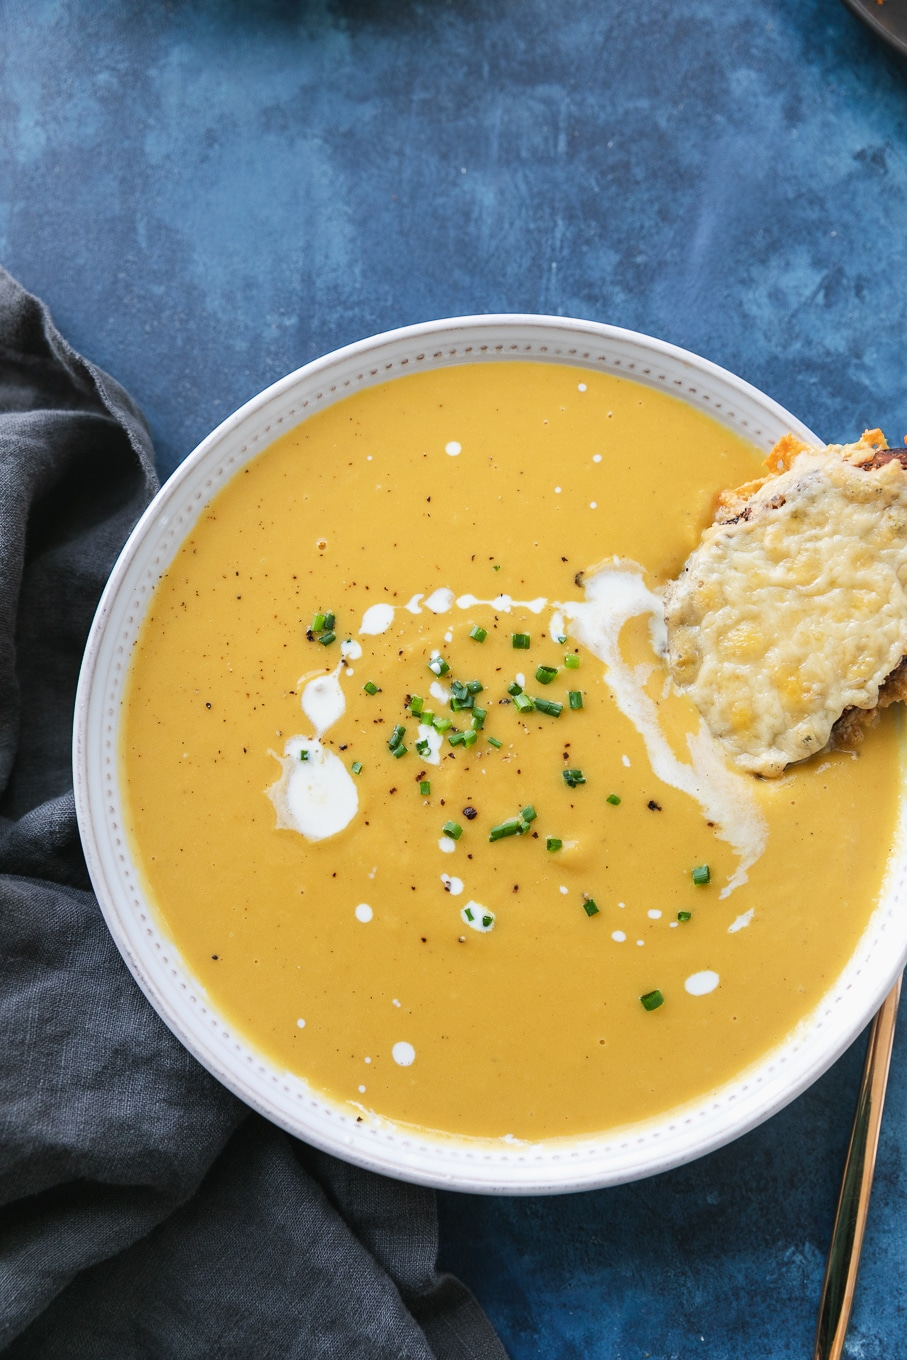 Overhead shot of a bowl of orange soup drizzled with cream and chives, with a cheesy toast resting in the soup